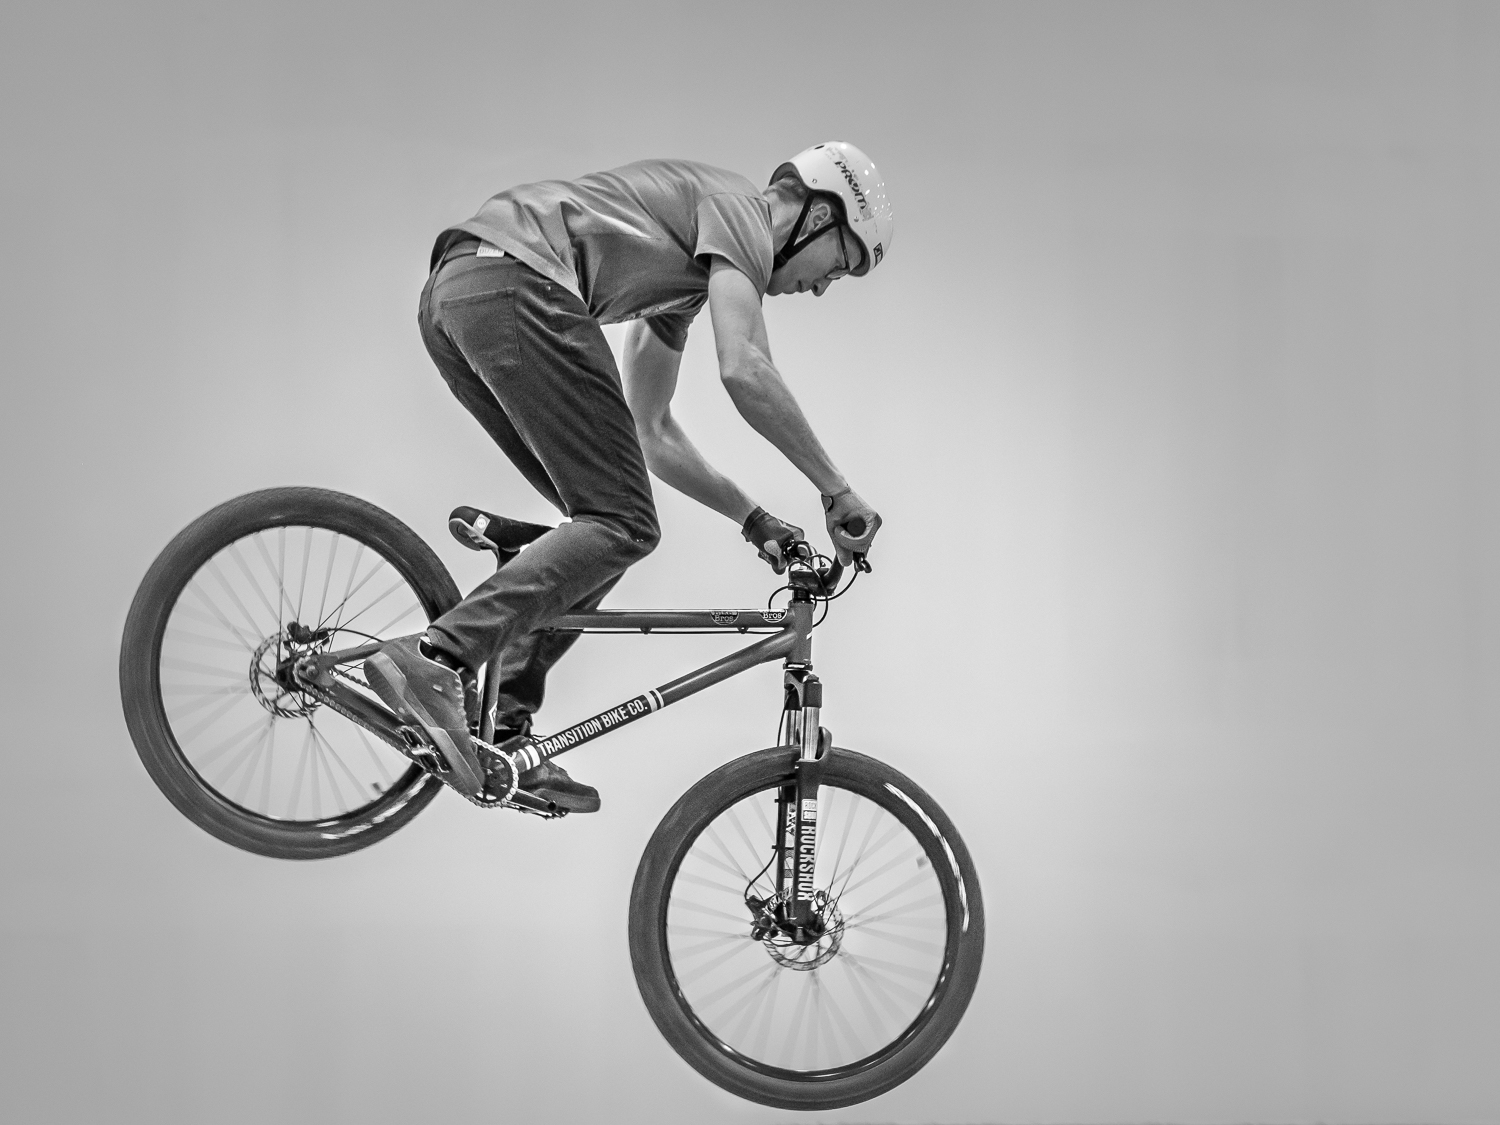 The Bicyclist In The Air